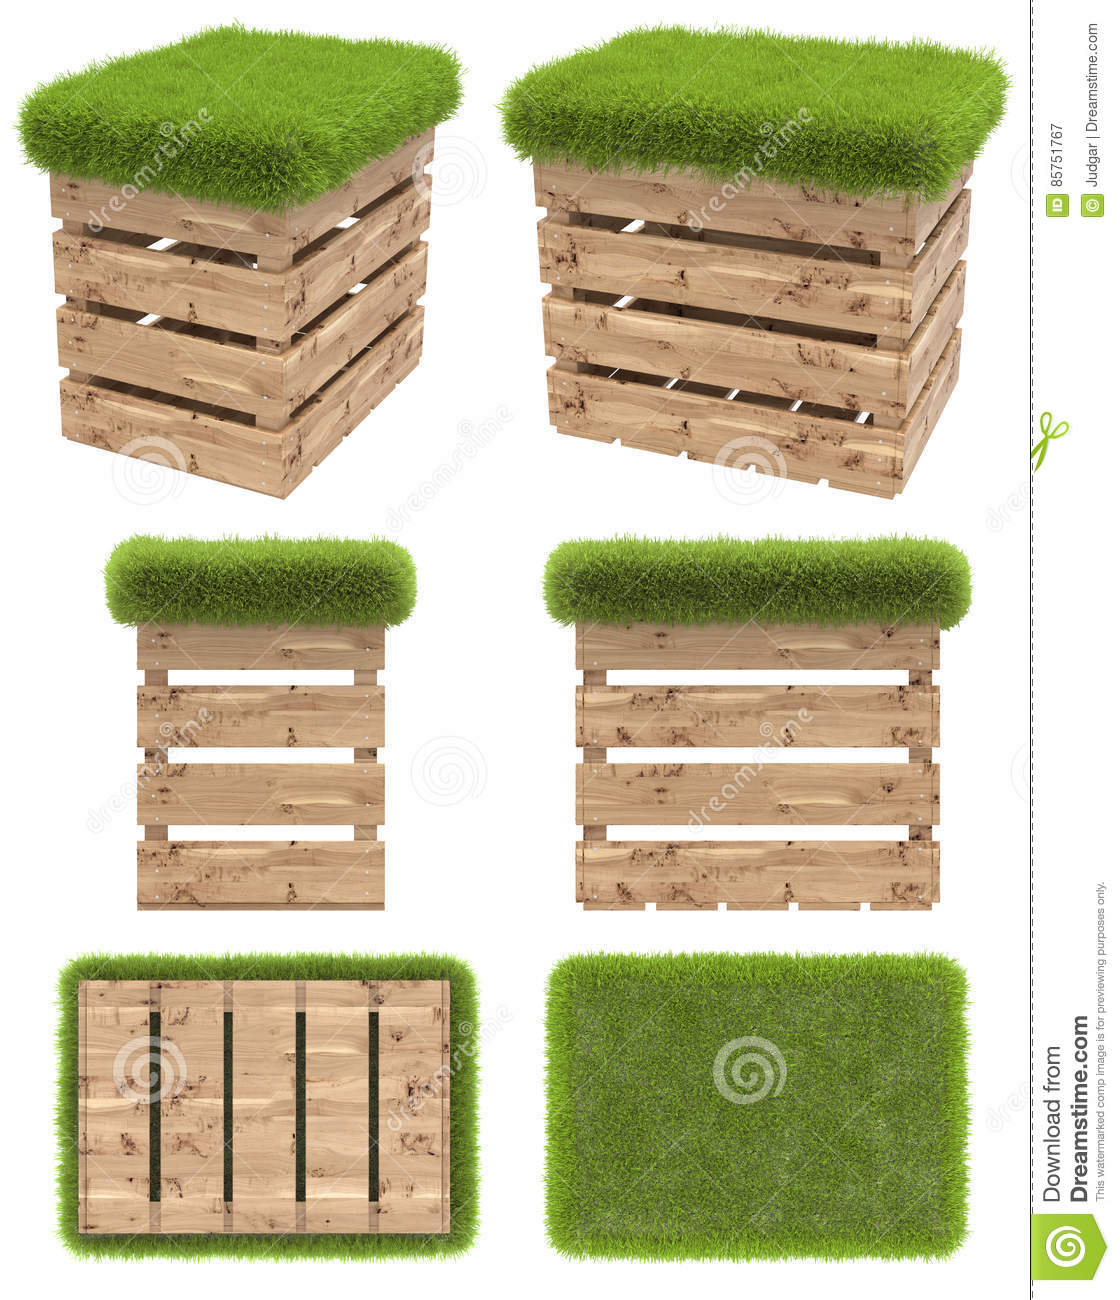 Garden Furniture Top View the chair of the wooden box or pallet with a seat of grass. garden